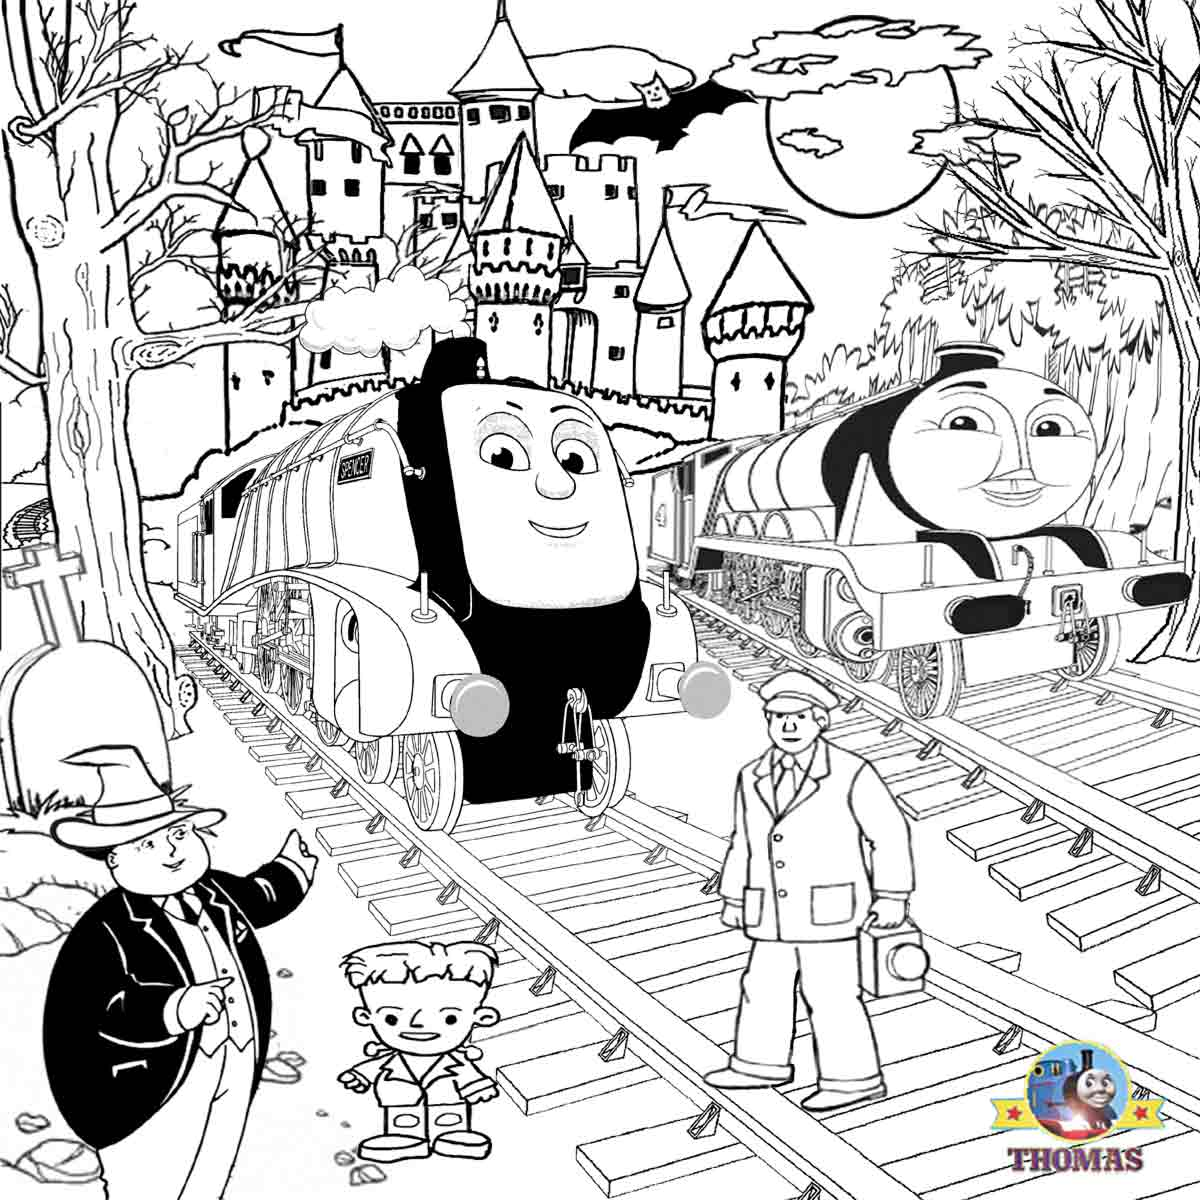 Diesel train coloring pages - Thomas Spencer And Gordon Coloring Ideas For Kids To Color Online Activities Halloween Spooky Castle